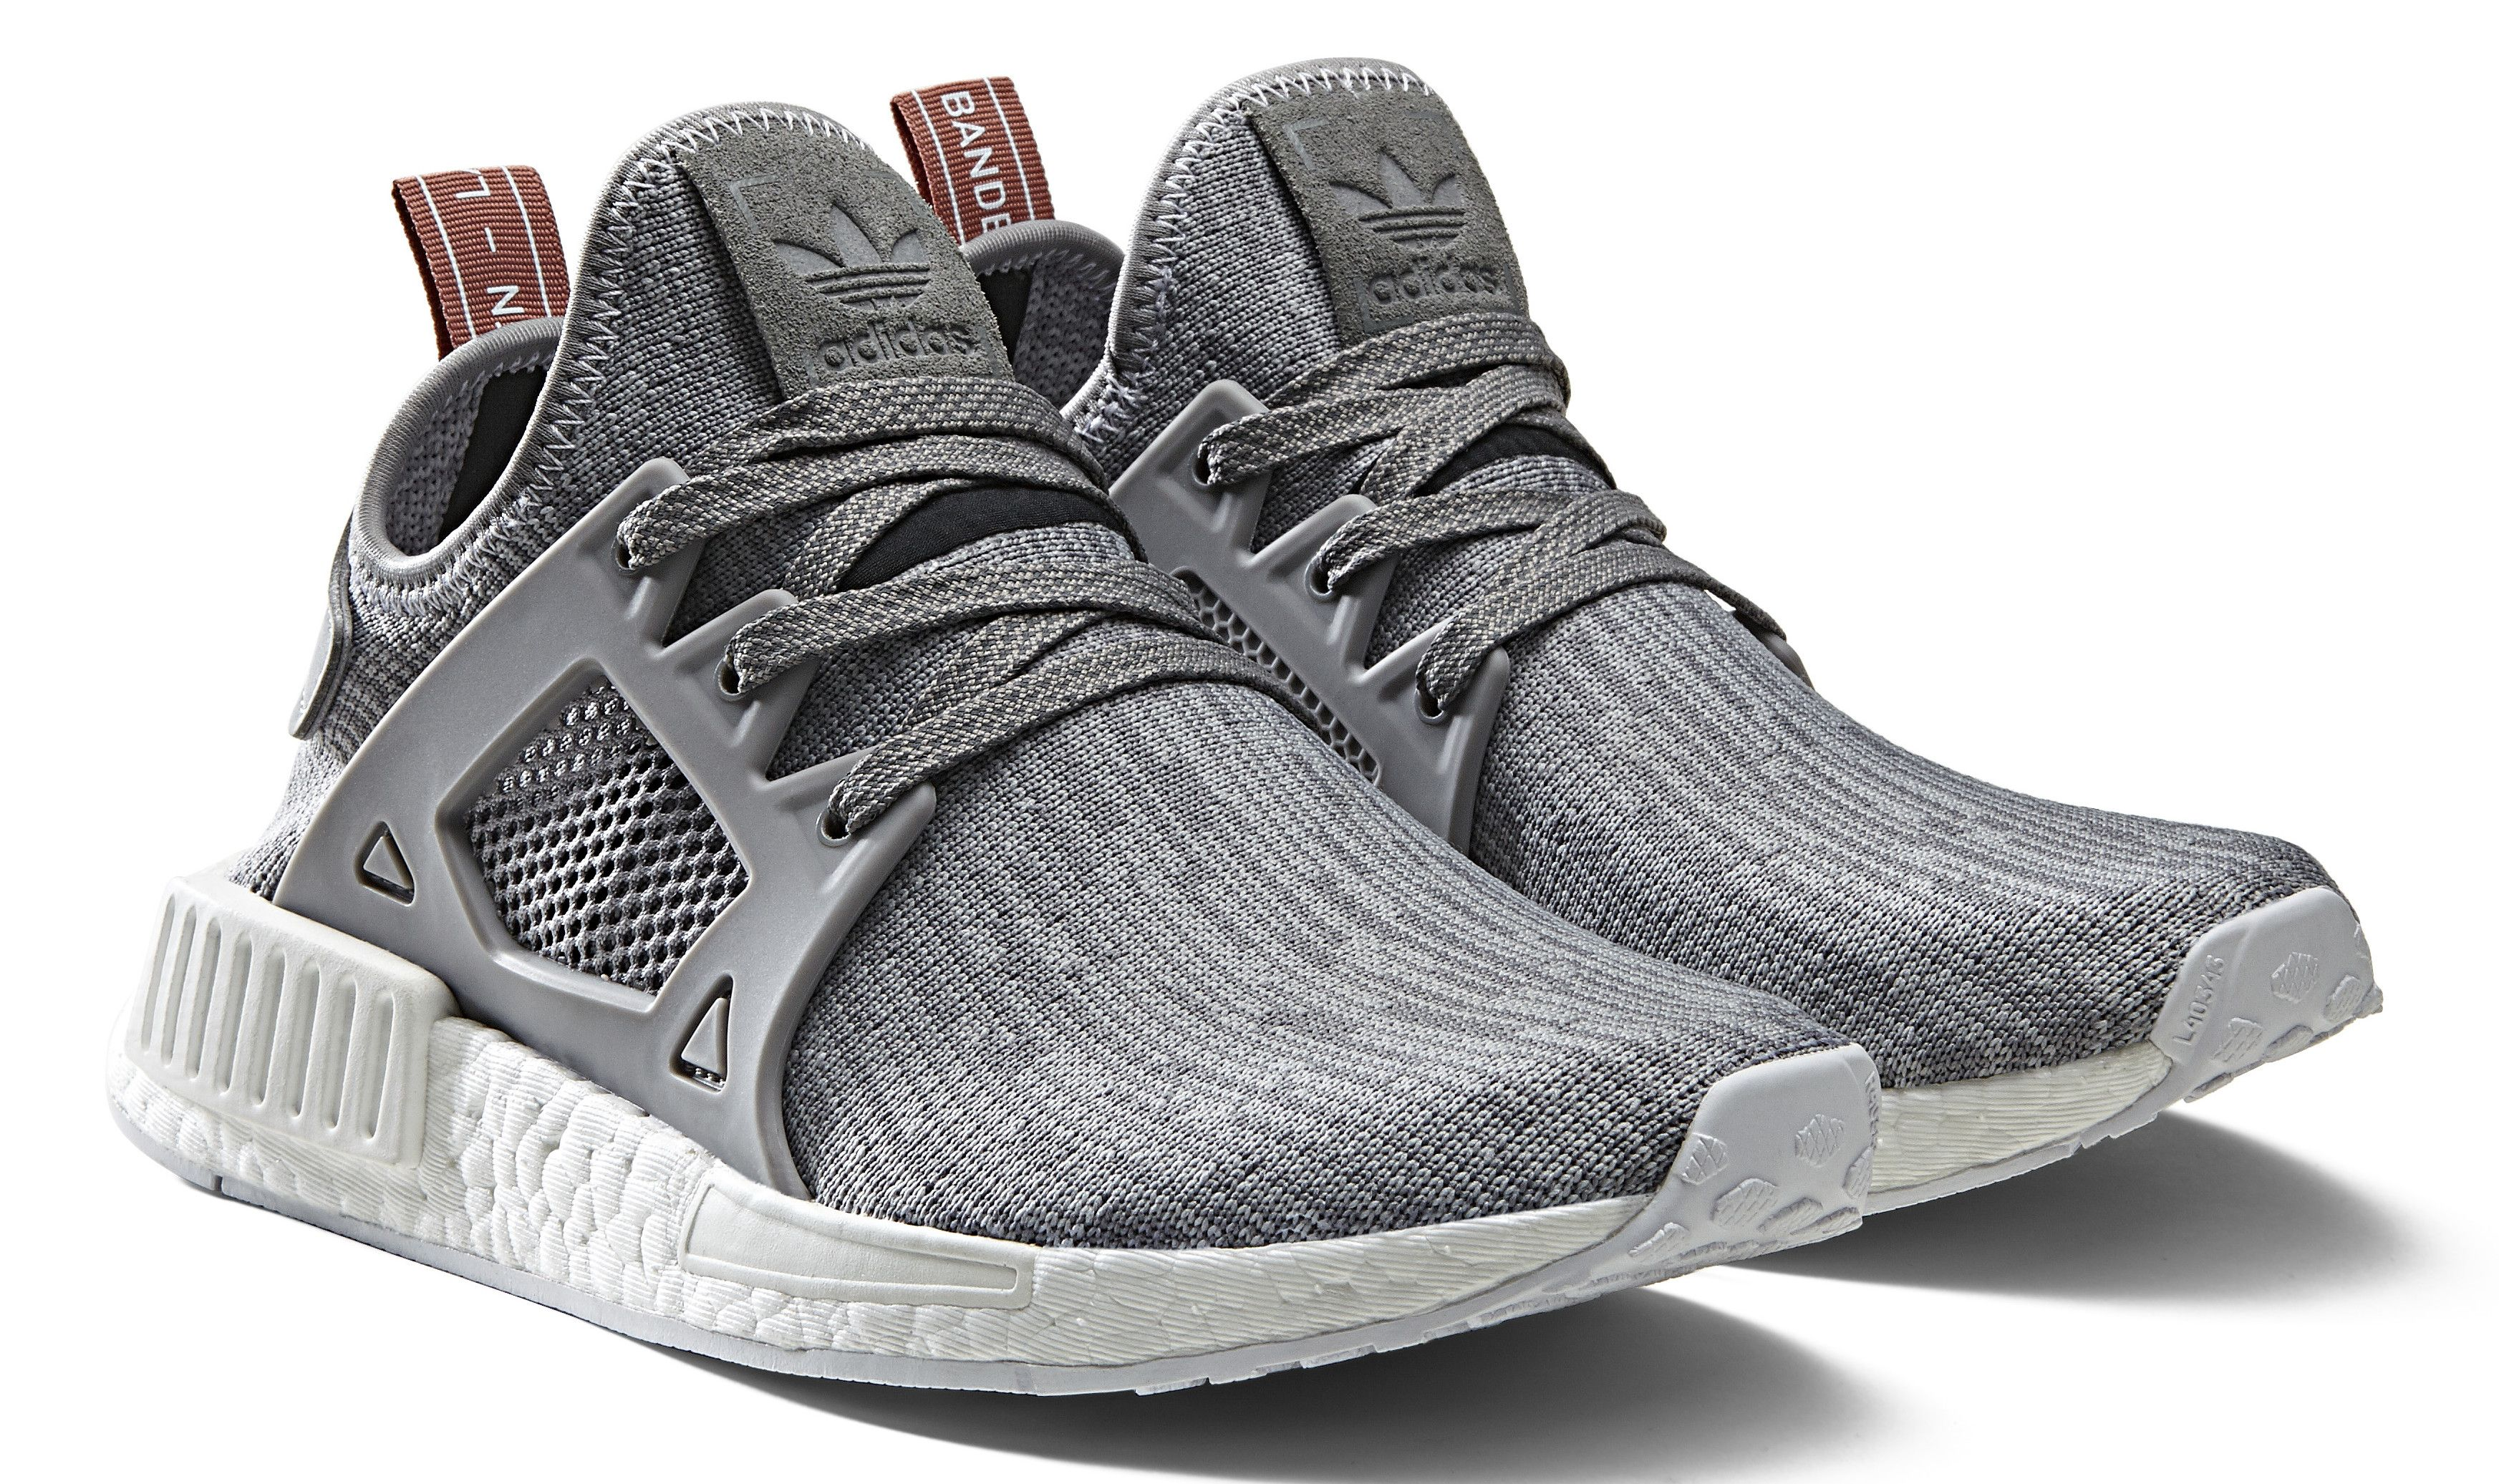 adidas-nmd-xr1-glitch-grey-2JPG_p5h2qu.jpg (3490�2073) | Products I Love |  Pinterest | Adidas nmd, Nmd and Adidas